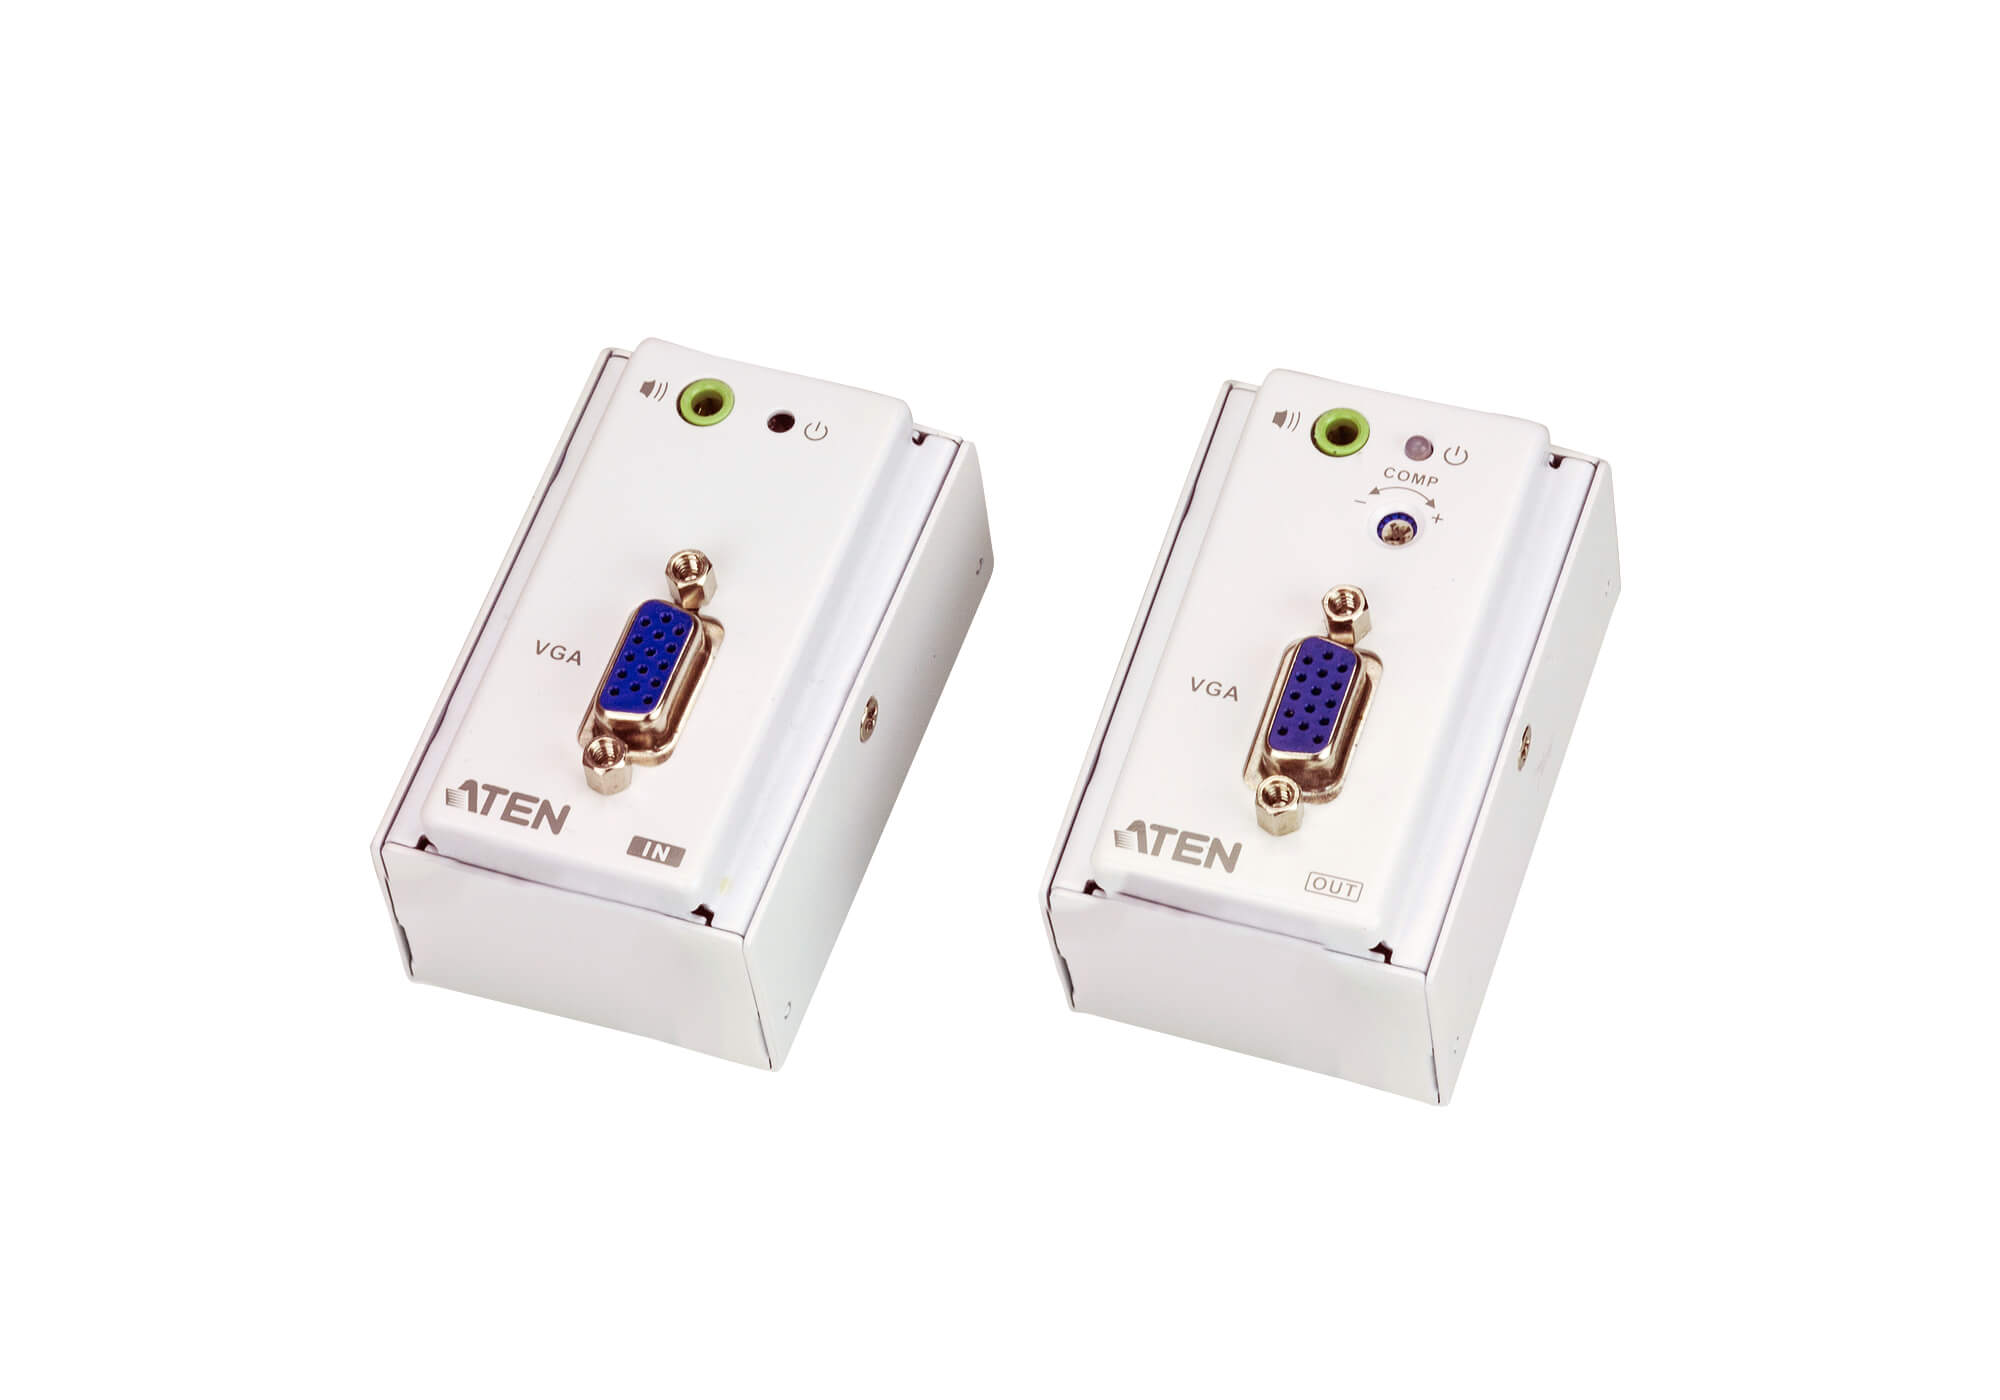 VGA/Audio Cat 5 Extender with MK Wall Plate (1280 x 1024 @150 m)-1